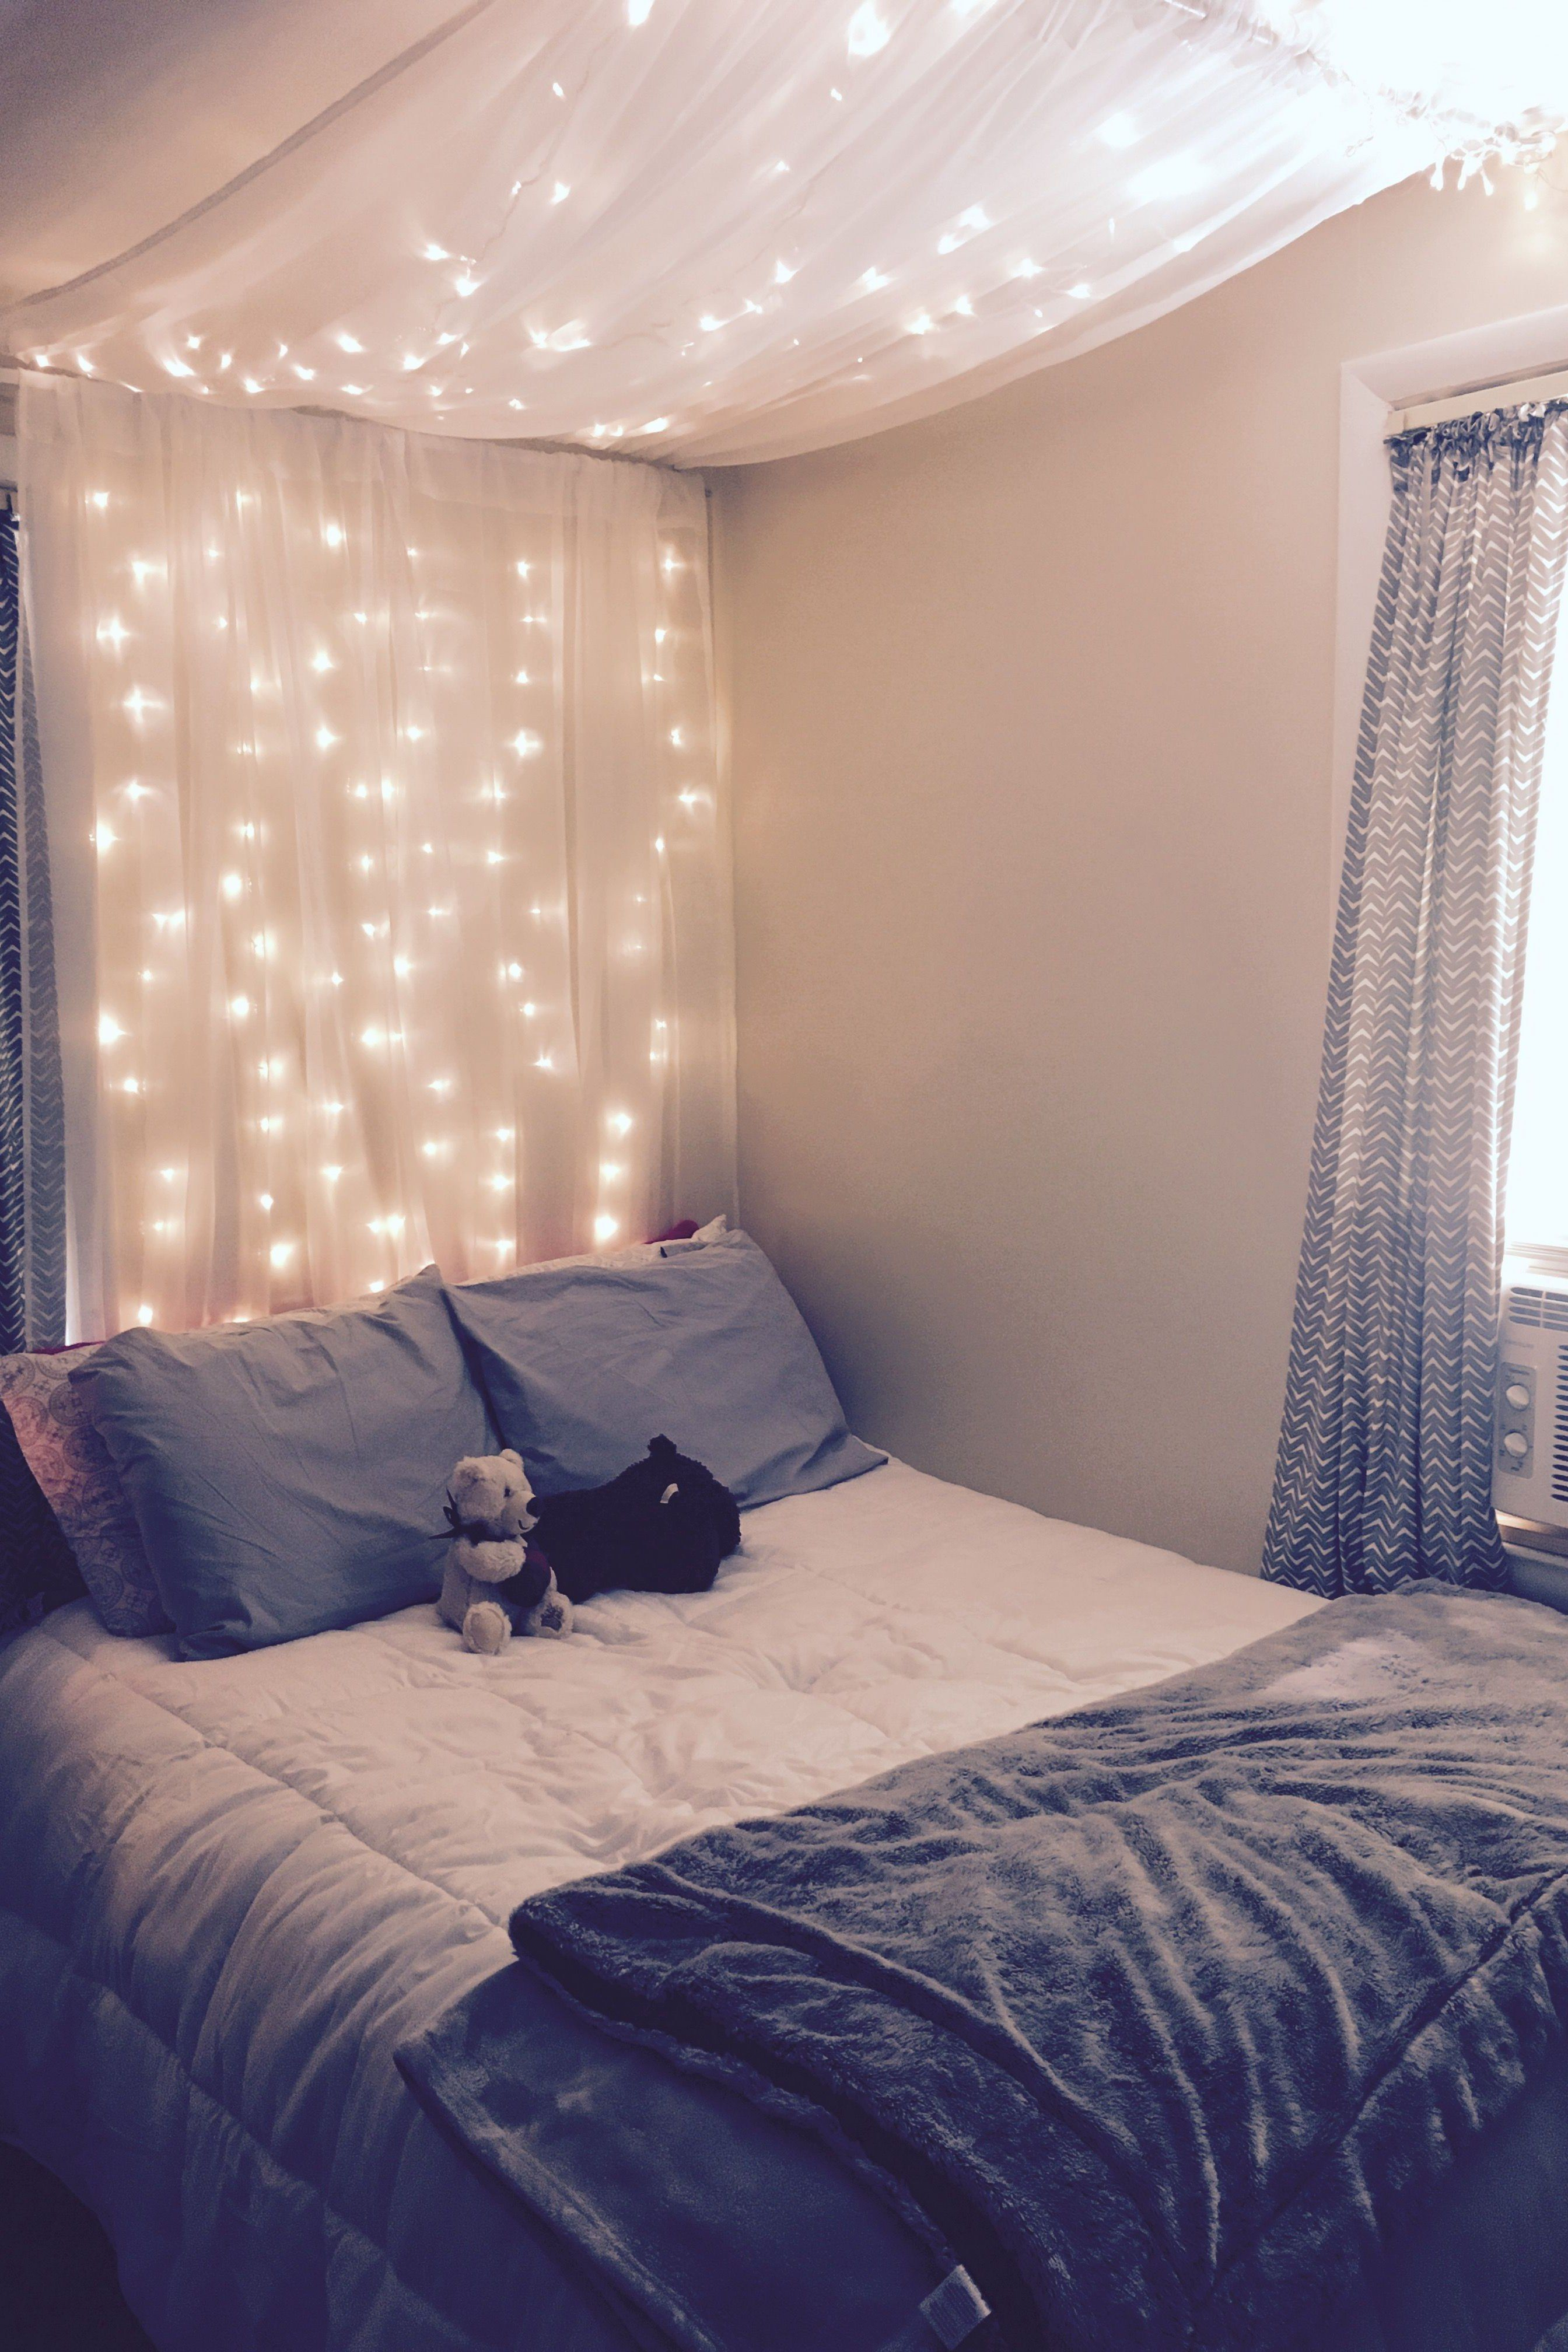 Bedroom Decor All The Bedroom Style And Design Ideas You Will